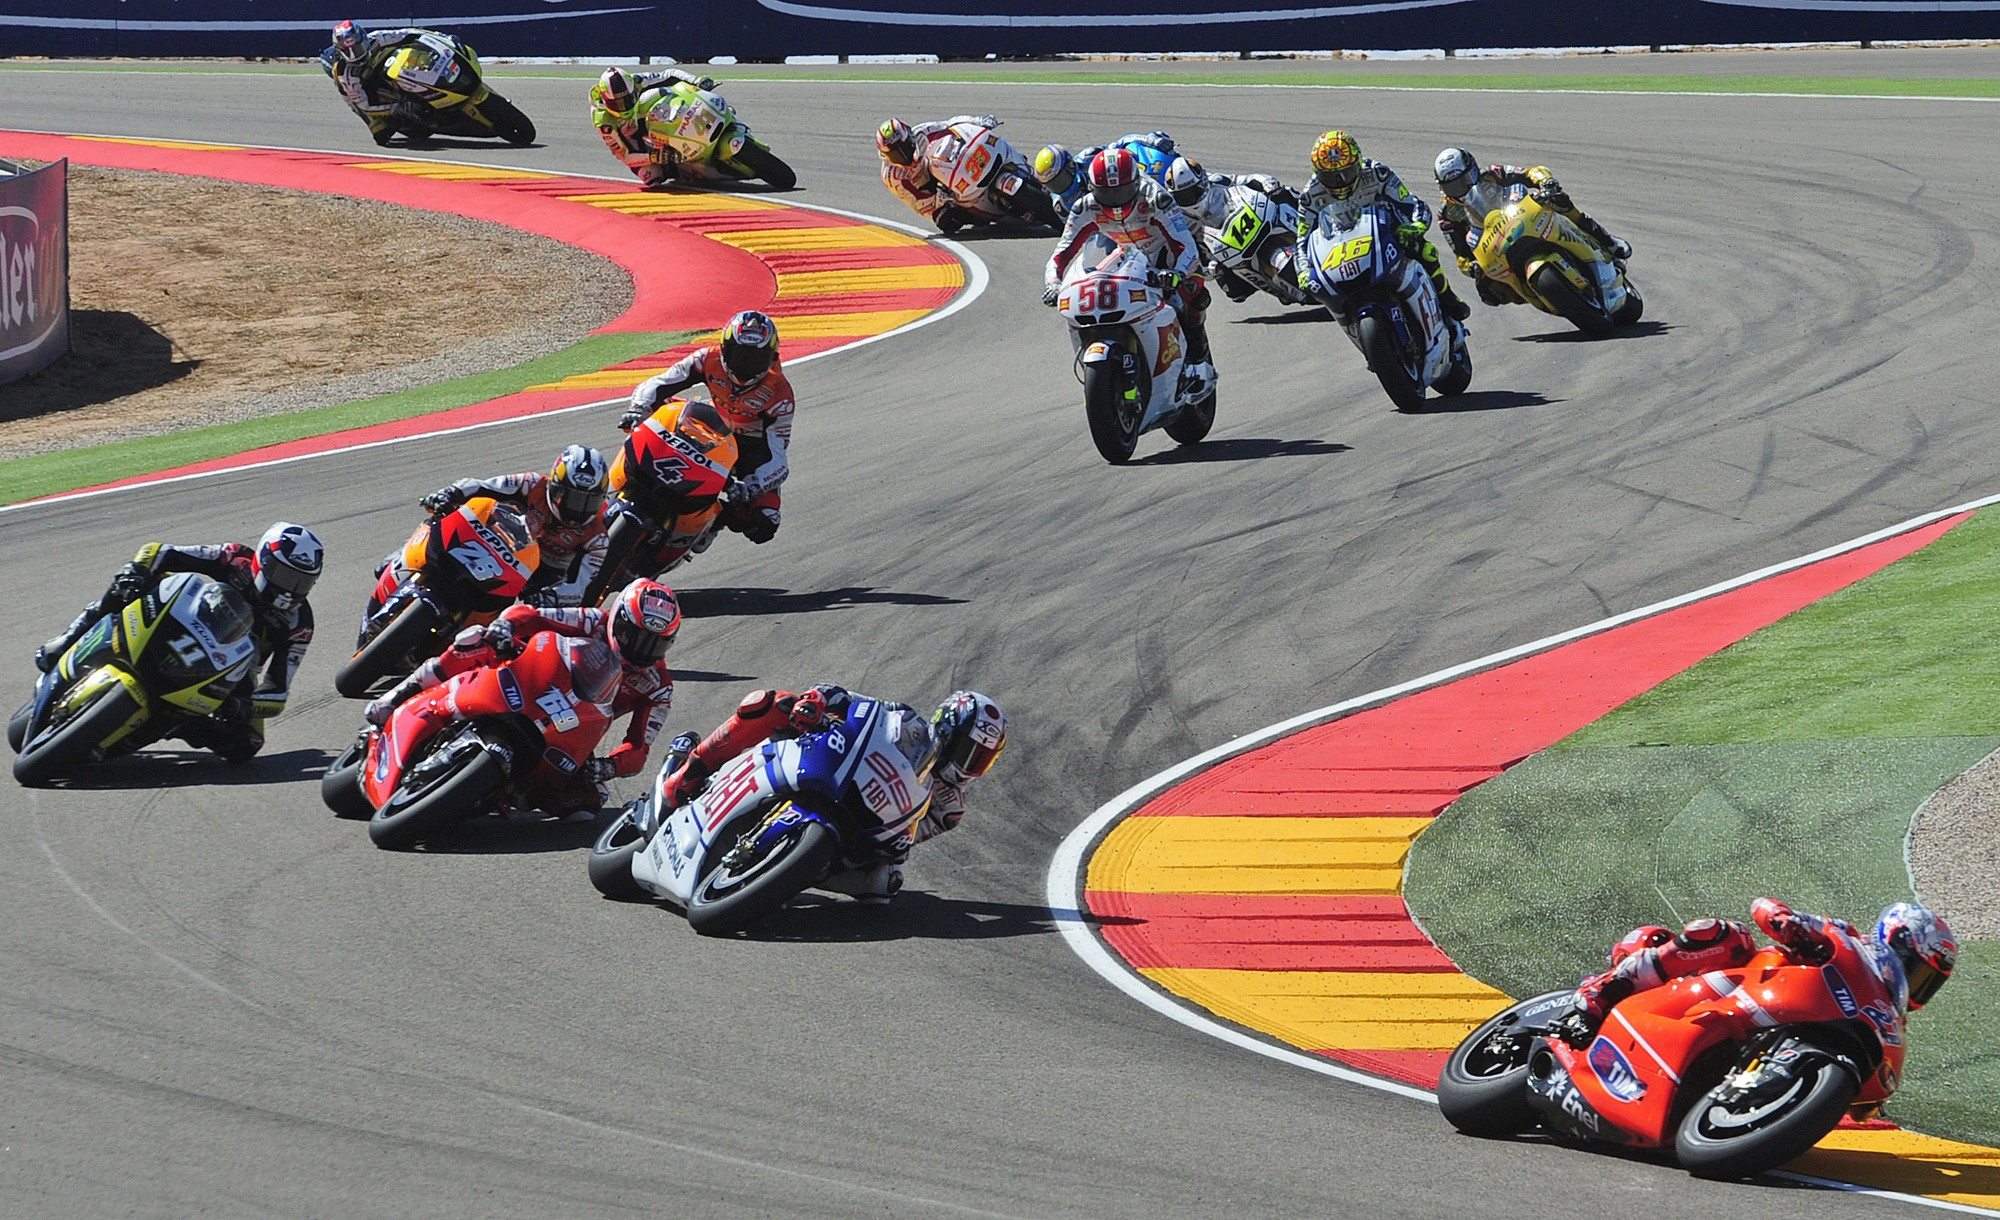 Casey StonerGrand Prix MotoGP d'Aragon (Espagne) en direct live streaming